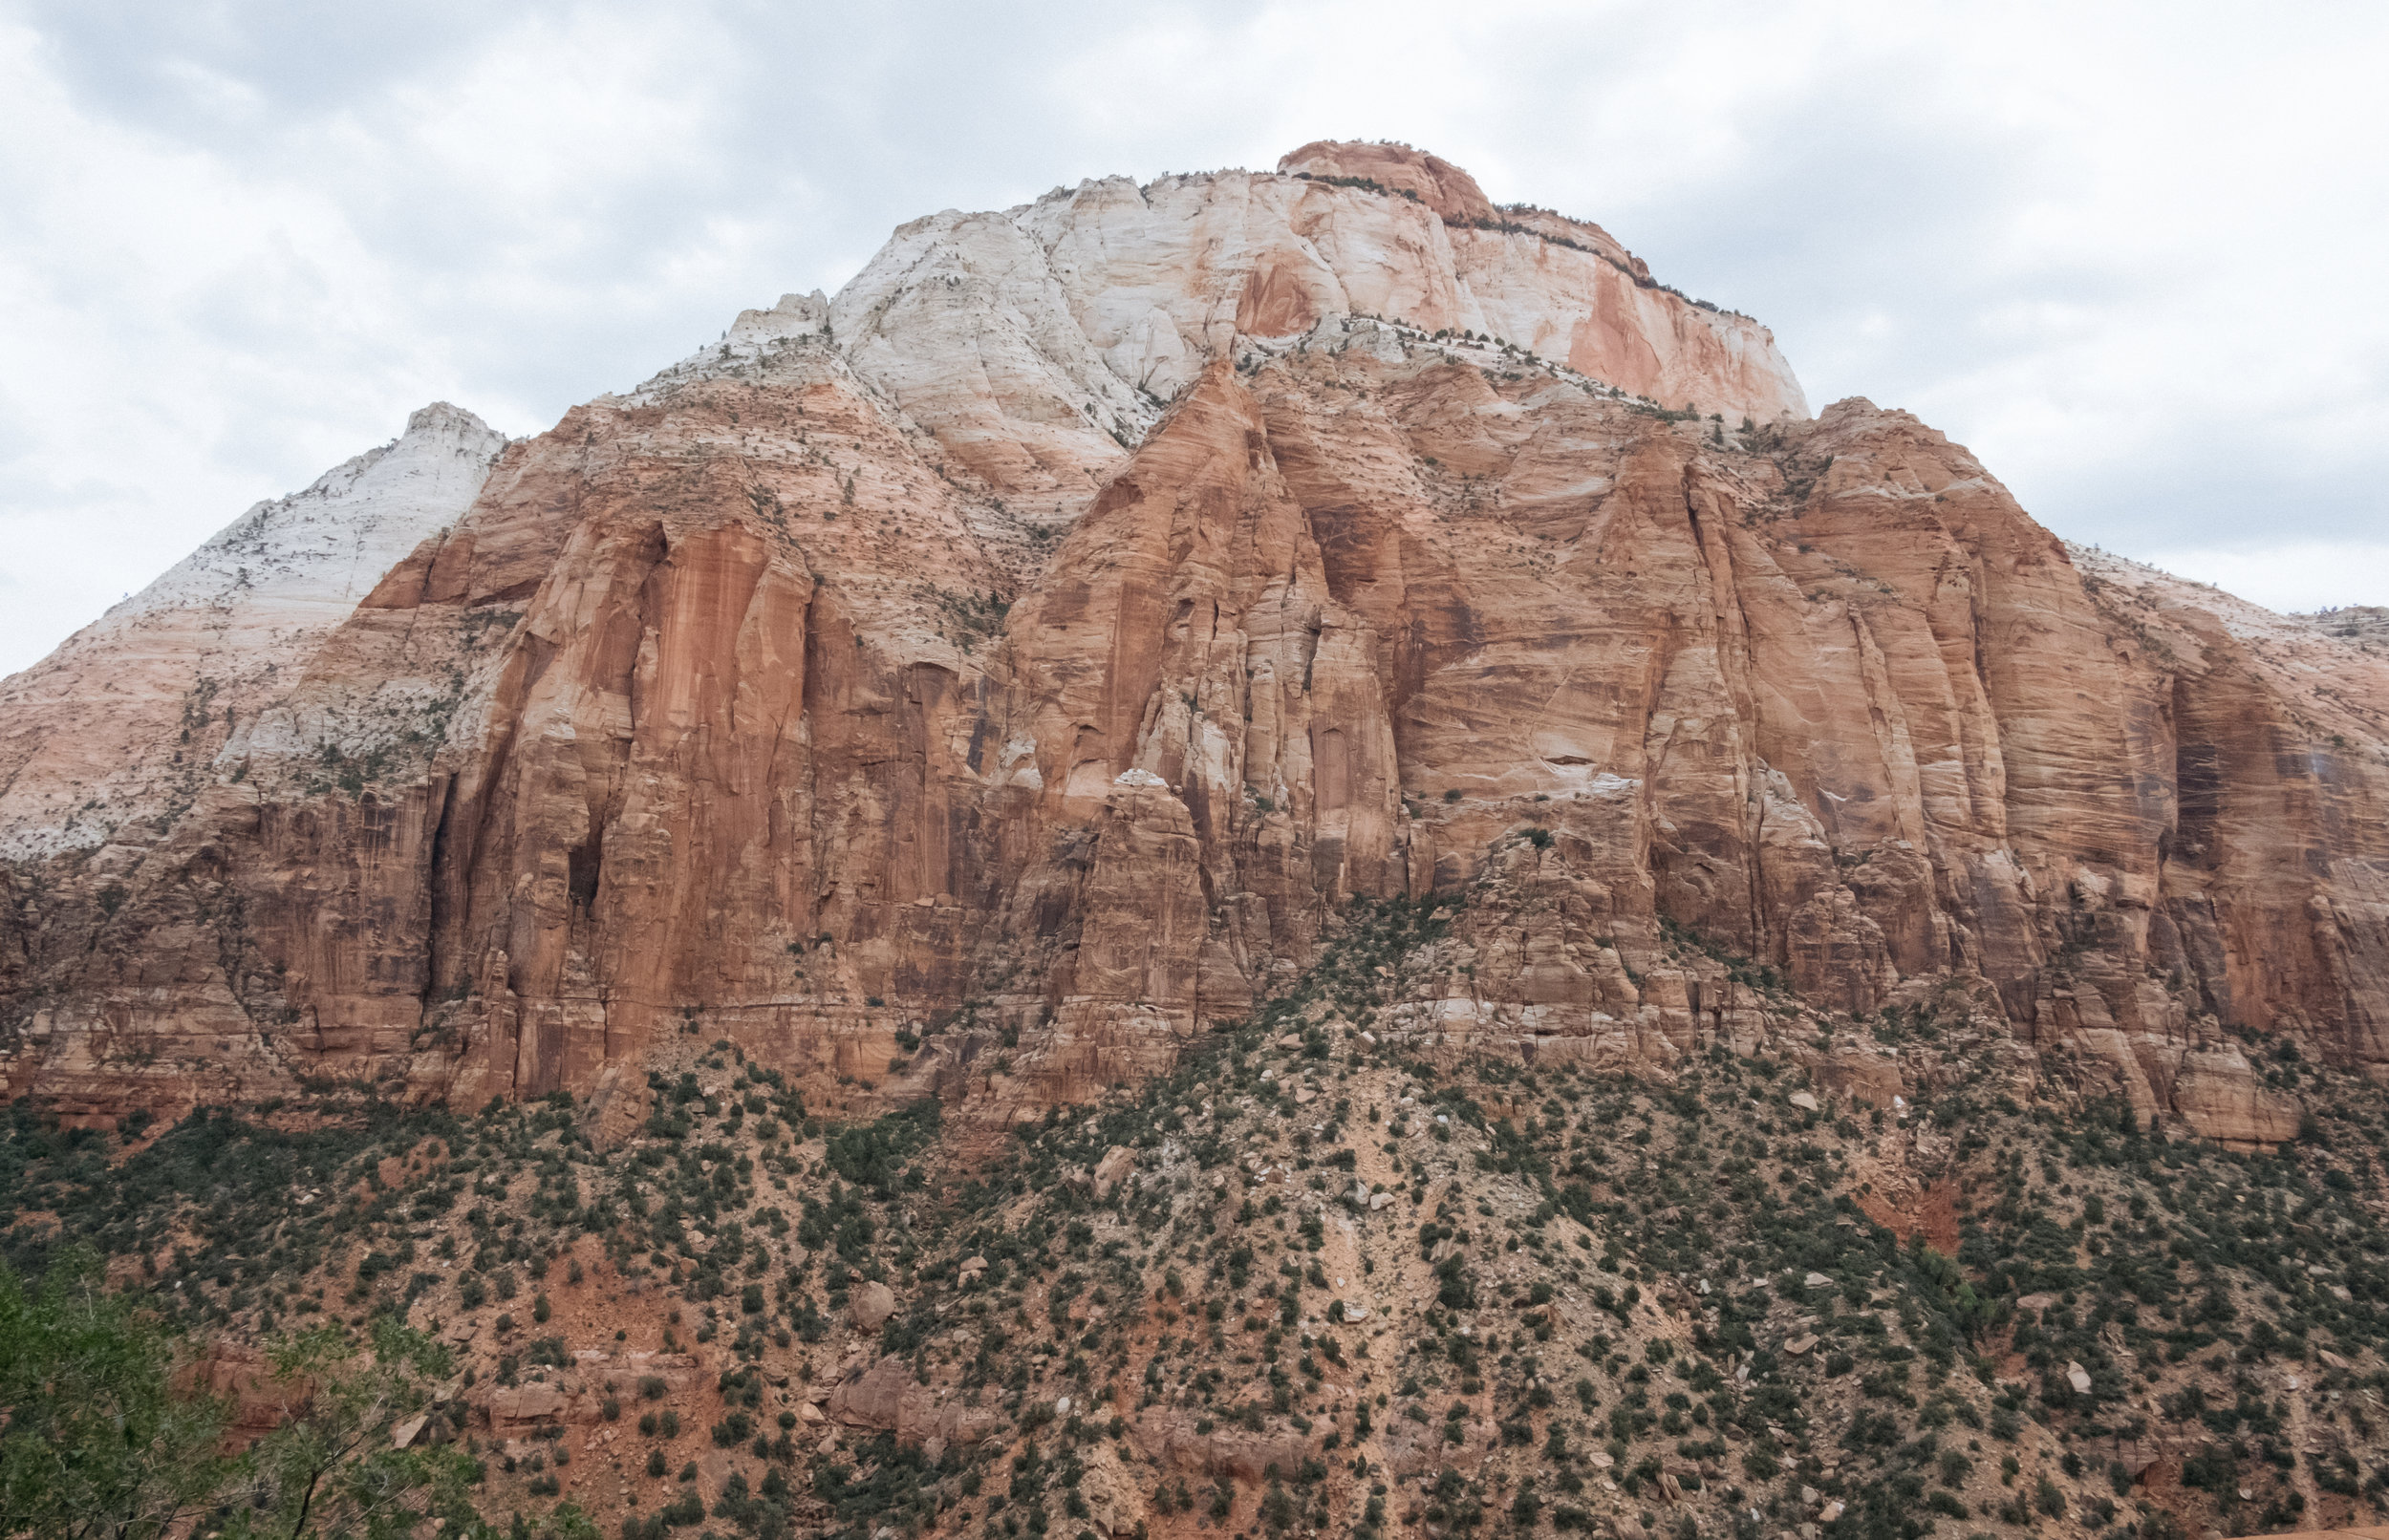 Majestic mountains in Zion National Park